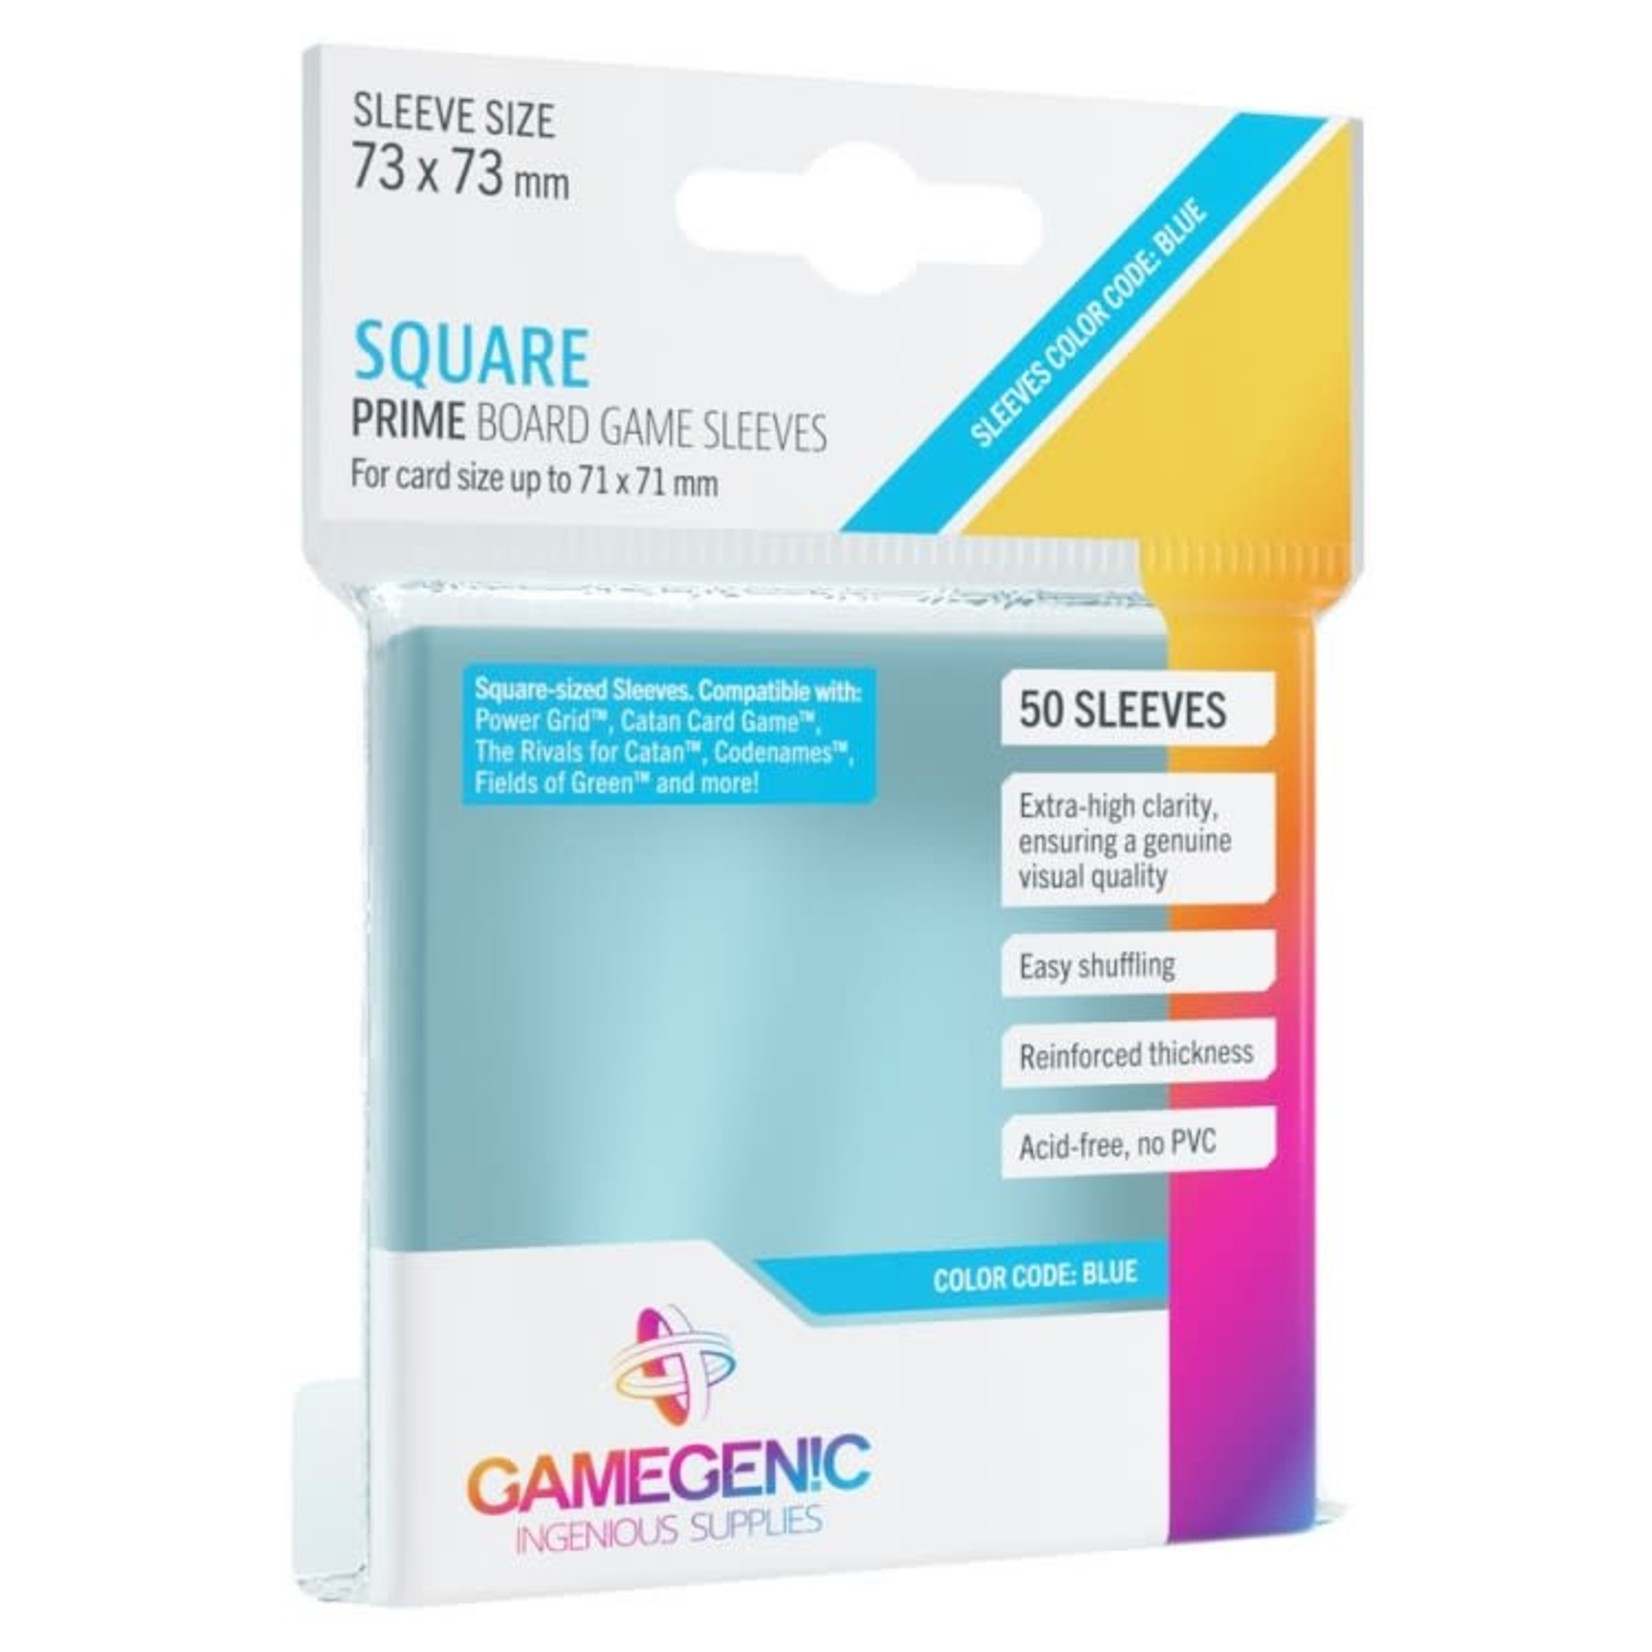 Gamegenic Gamegenic Sleeves: Square PRIME - 50 count (73x73mm)